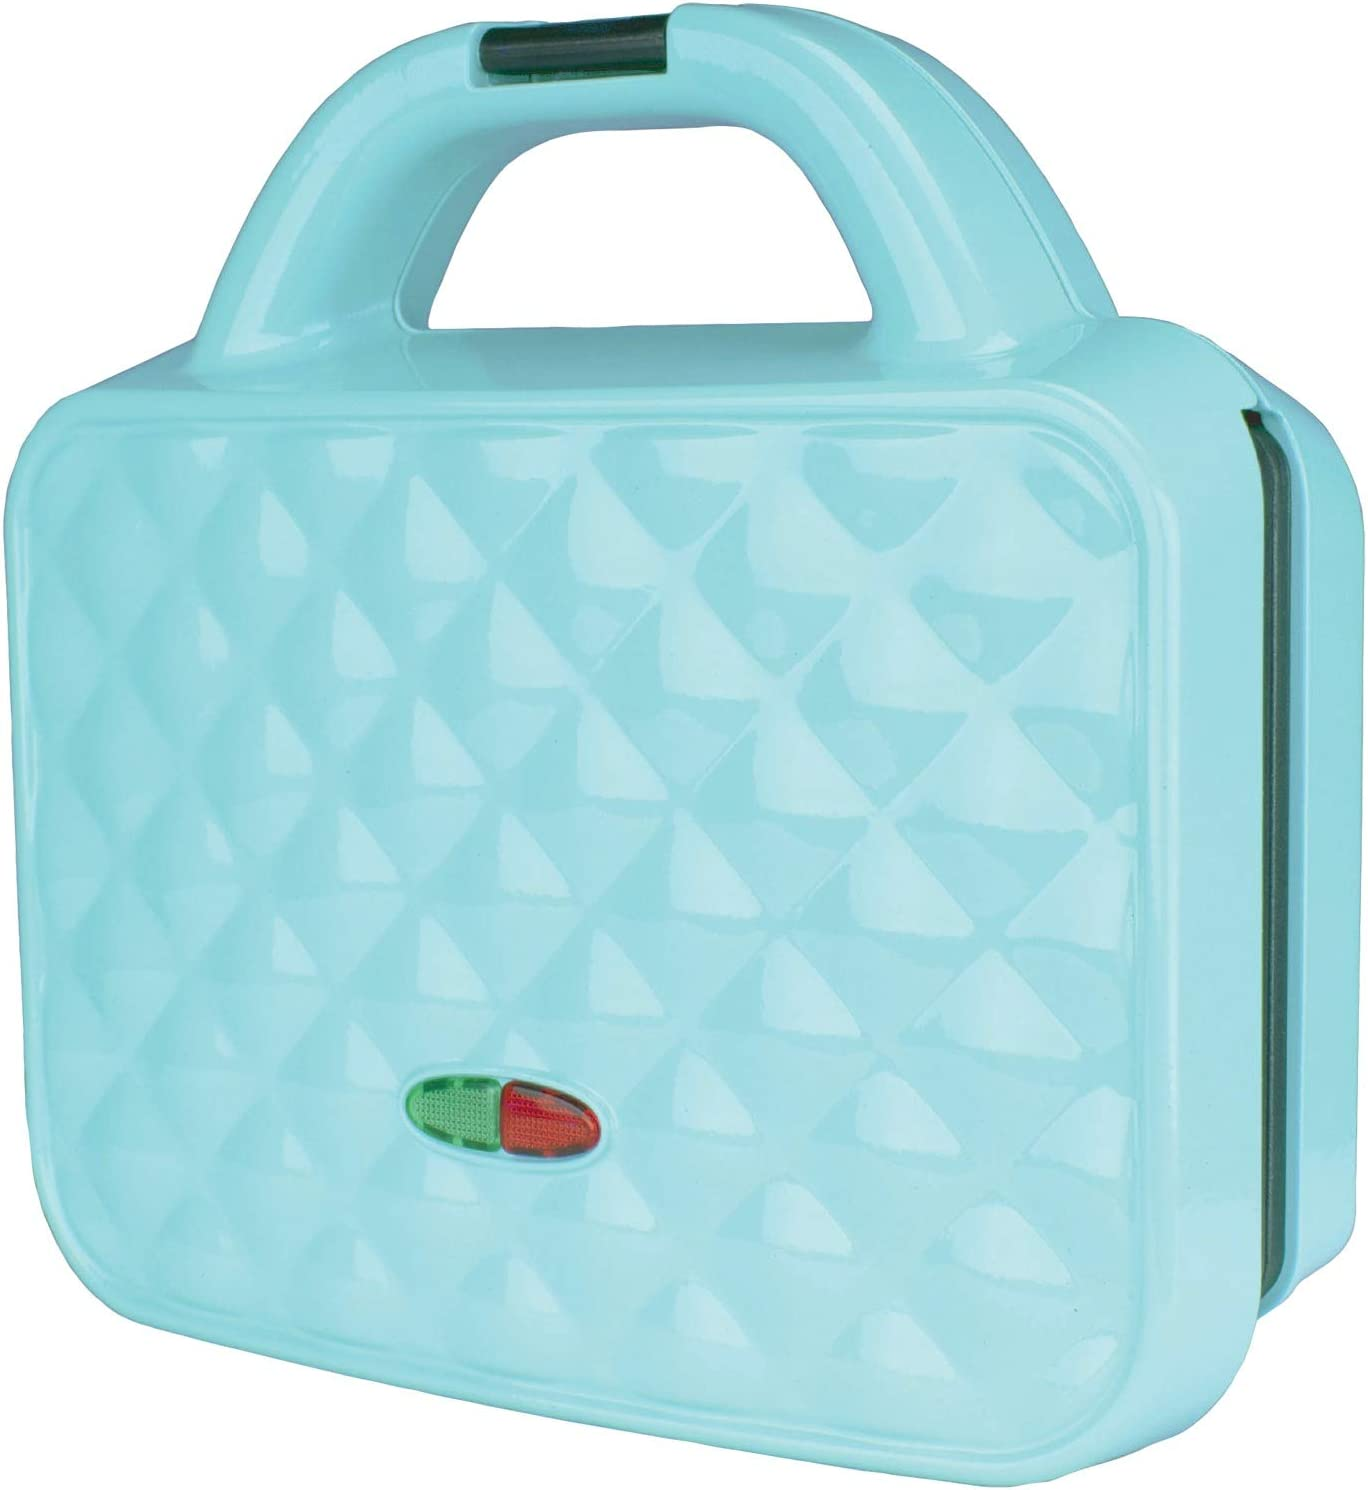 Brentwood TS-239BL Couture Purse Non-Stick Dual Waffle Maker, Blue